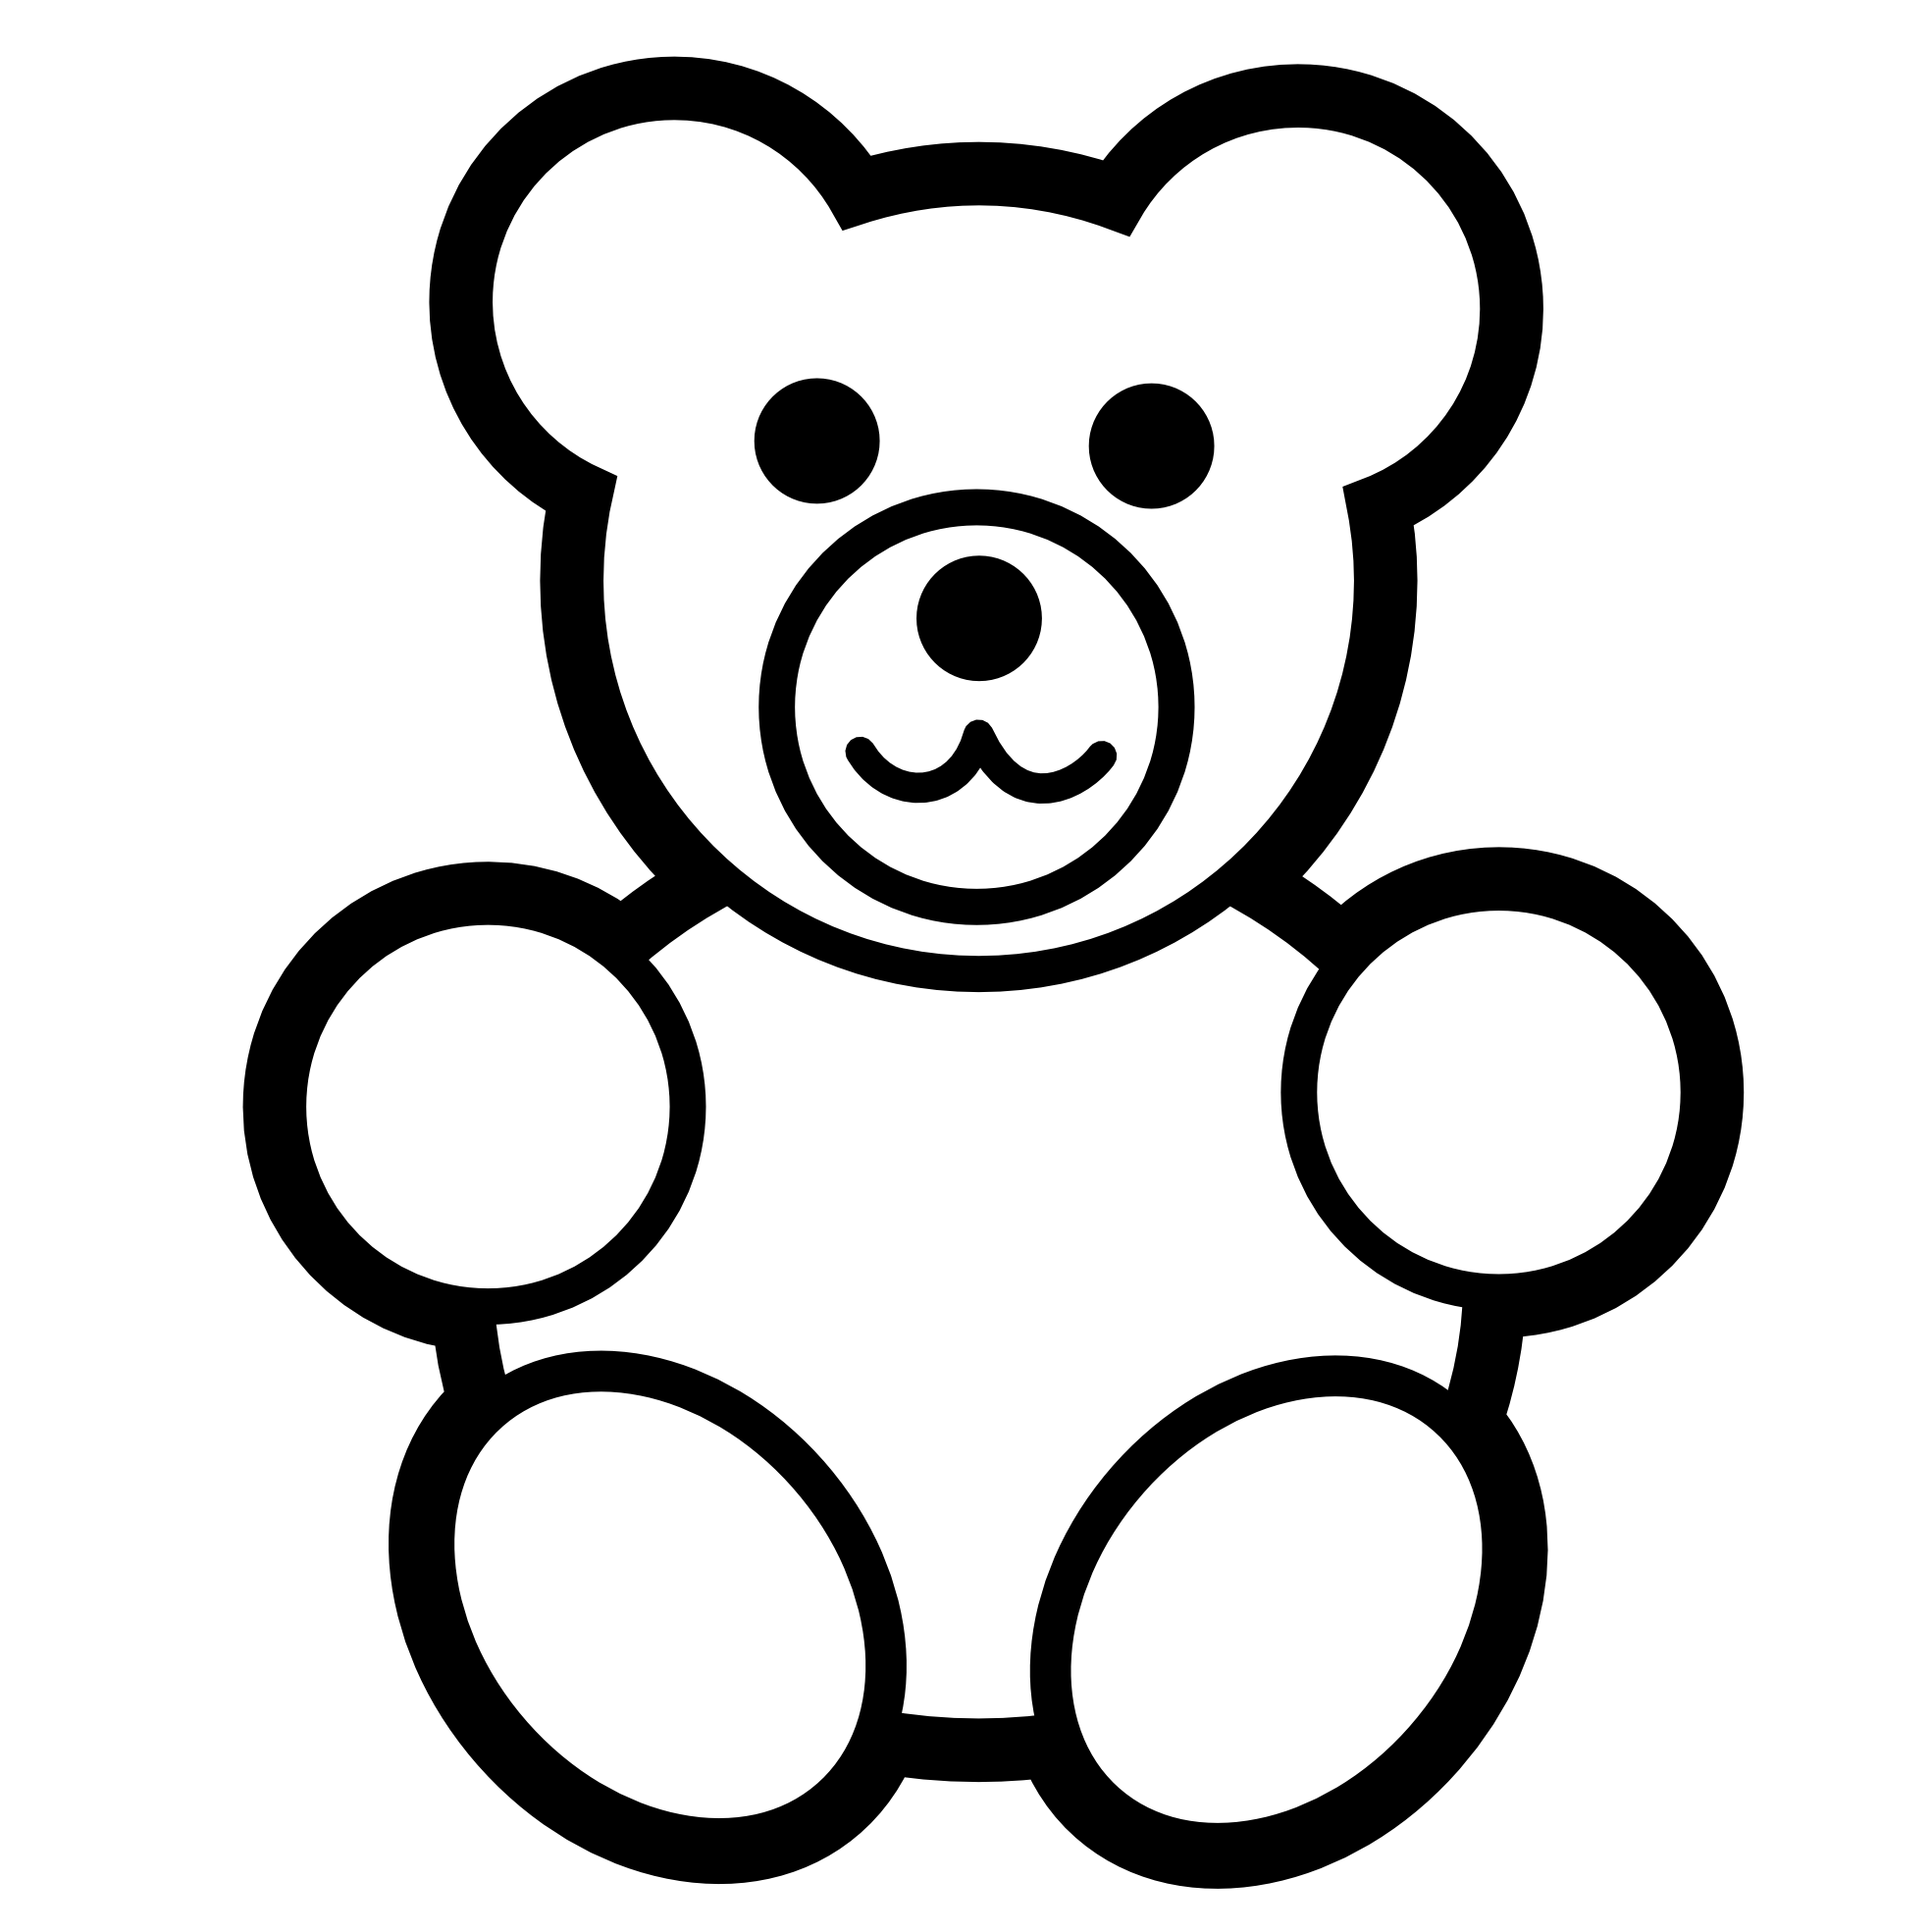 Teddy bear with band aid clipart black and white transparent download Images For > Baby Toys Clipart Black And White | Shrinky Dink ... transparent download